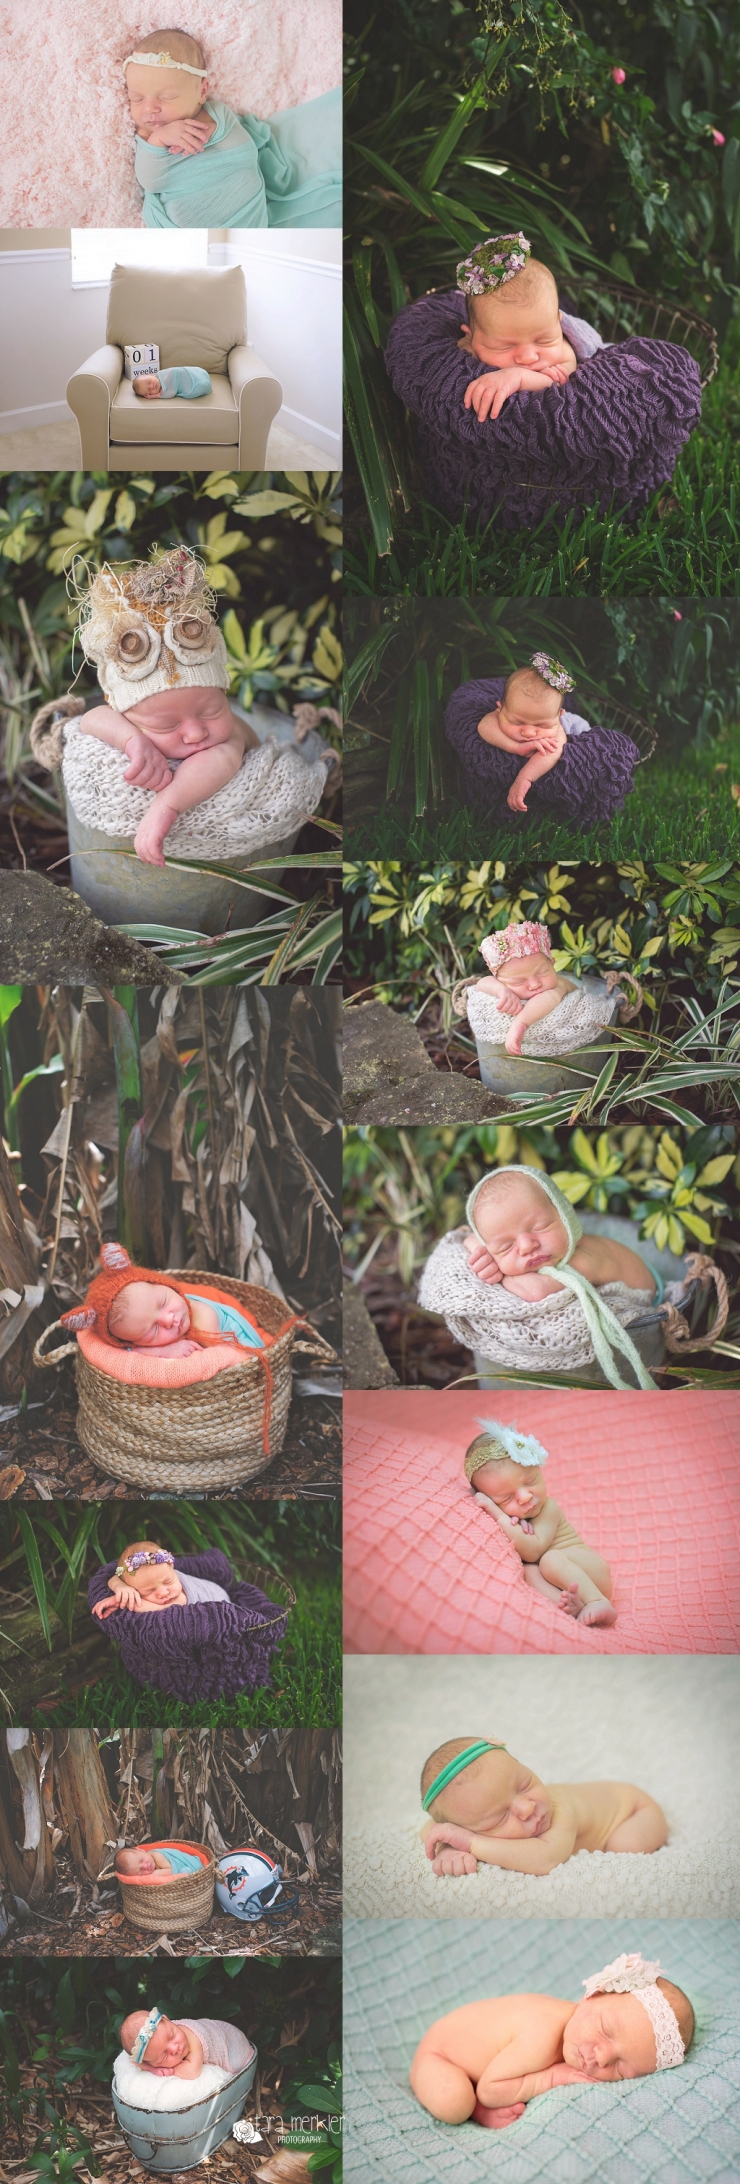 Tara Merkler Photography Orlando, Florida Newborn Photography April 2014_0006.jpg